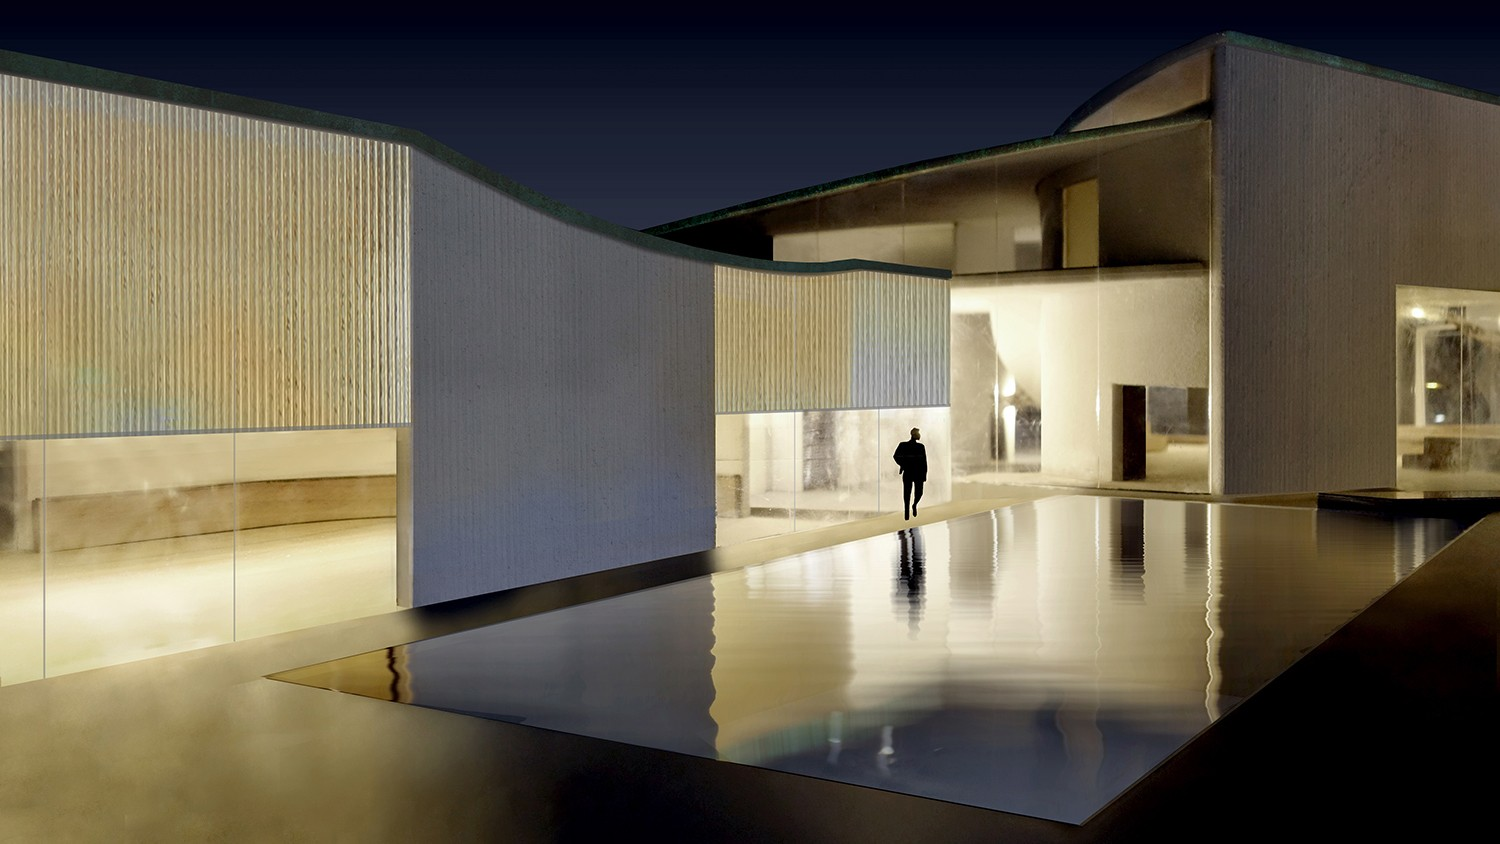 https://s3.us-east-2.amazonaws.com/steven-holl/uploads/projects/project-images/StevenHollArchitects_IAS_Model_Night_WH.jpg